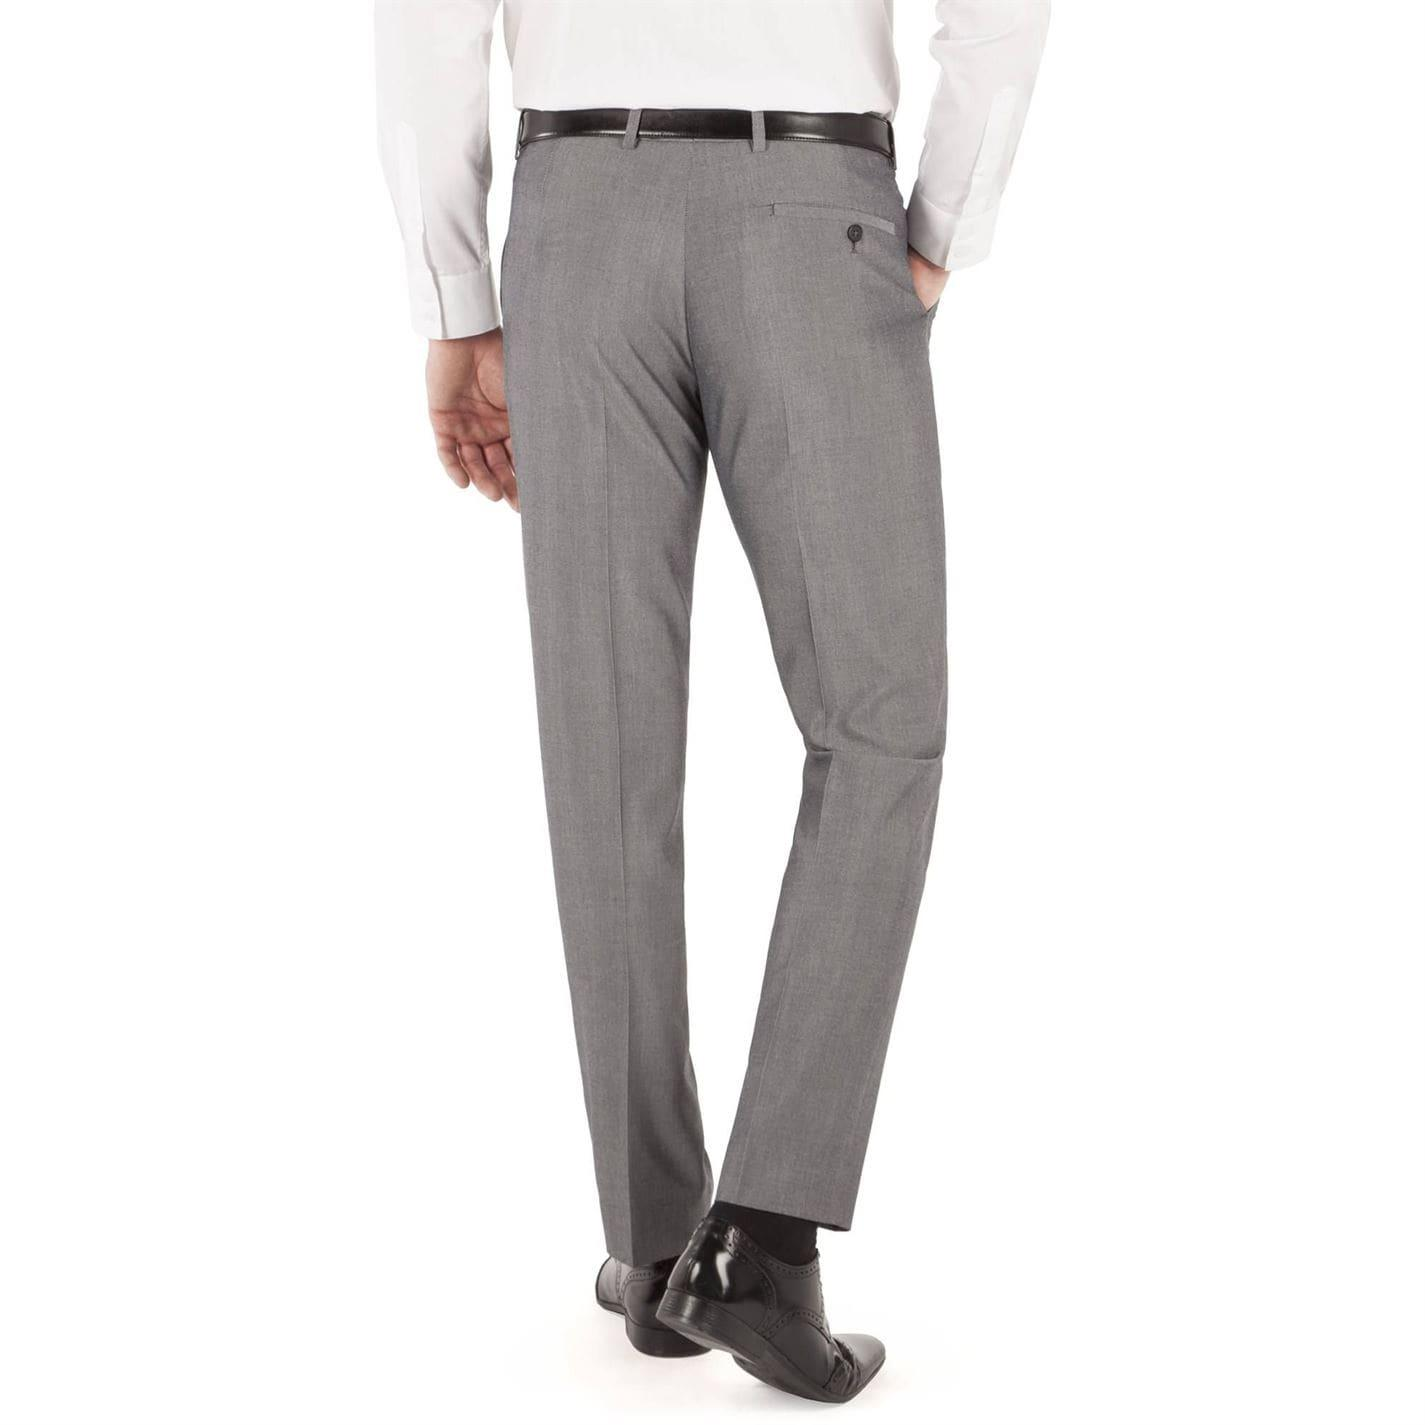 Limehaus Synthetic Stevenson Tonic Slim Fit Trousers in Grey (Grey) for Men